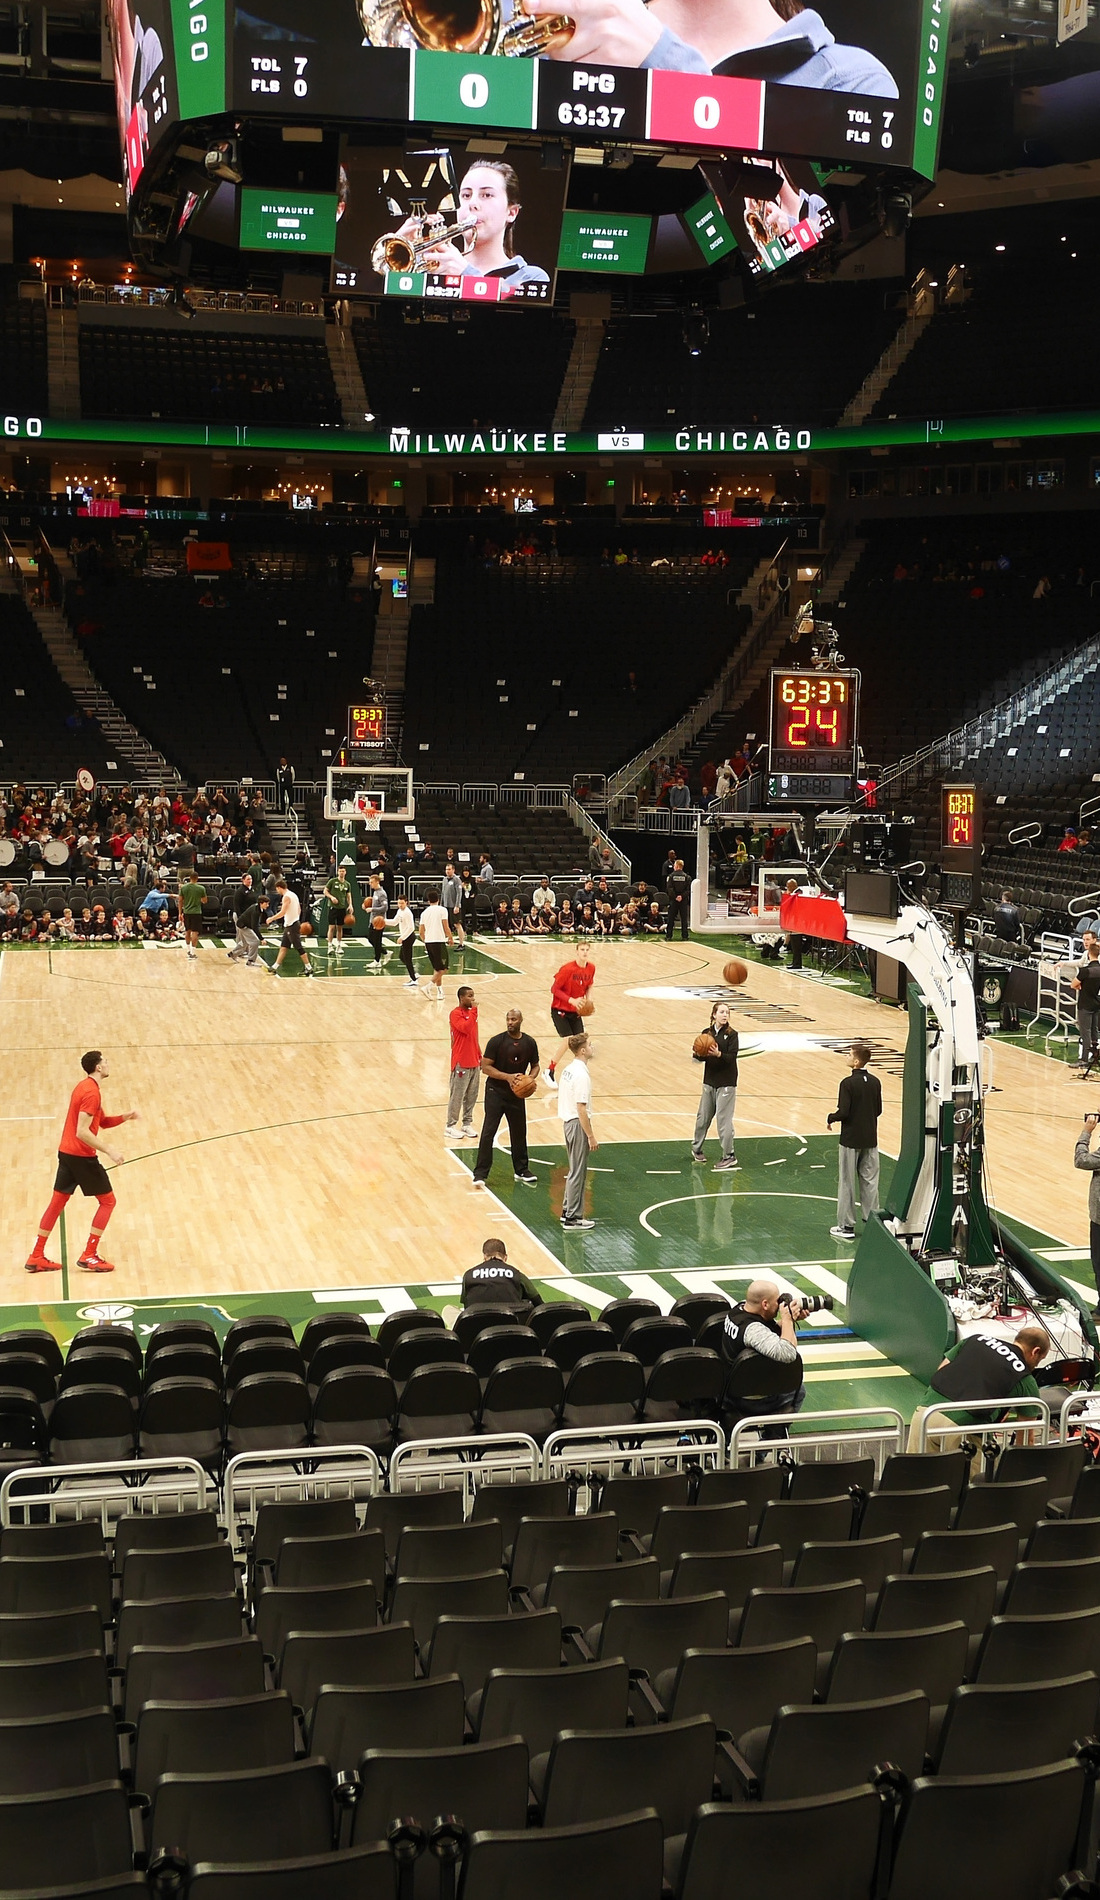 A Milwaukee Bucks live event